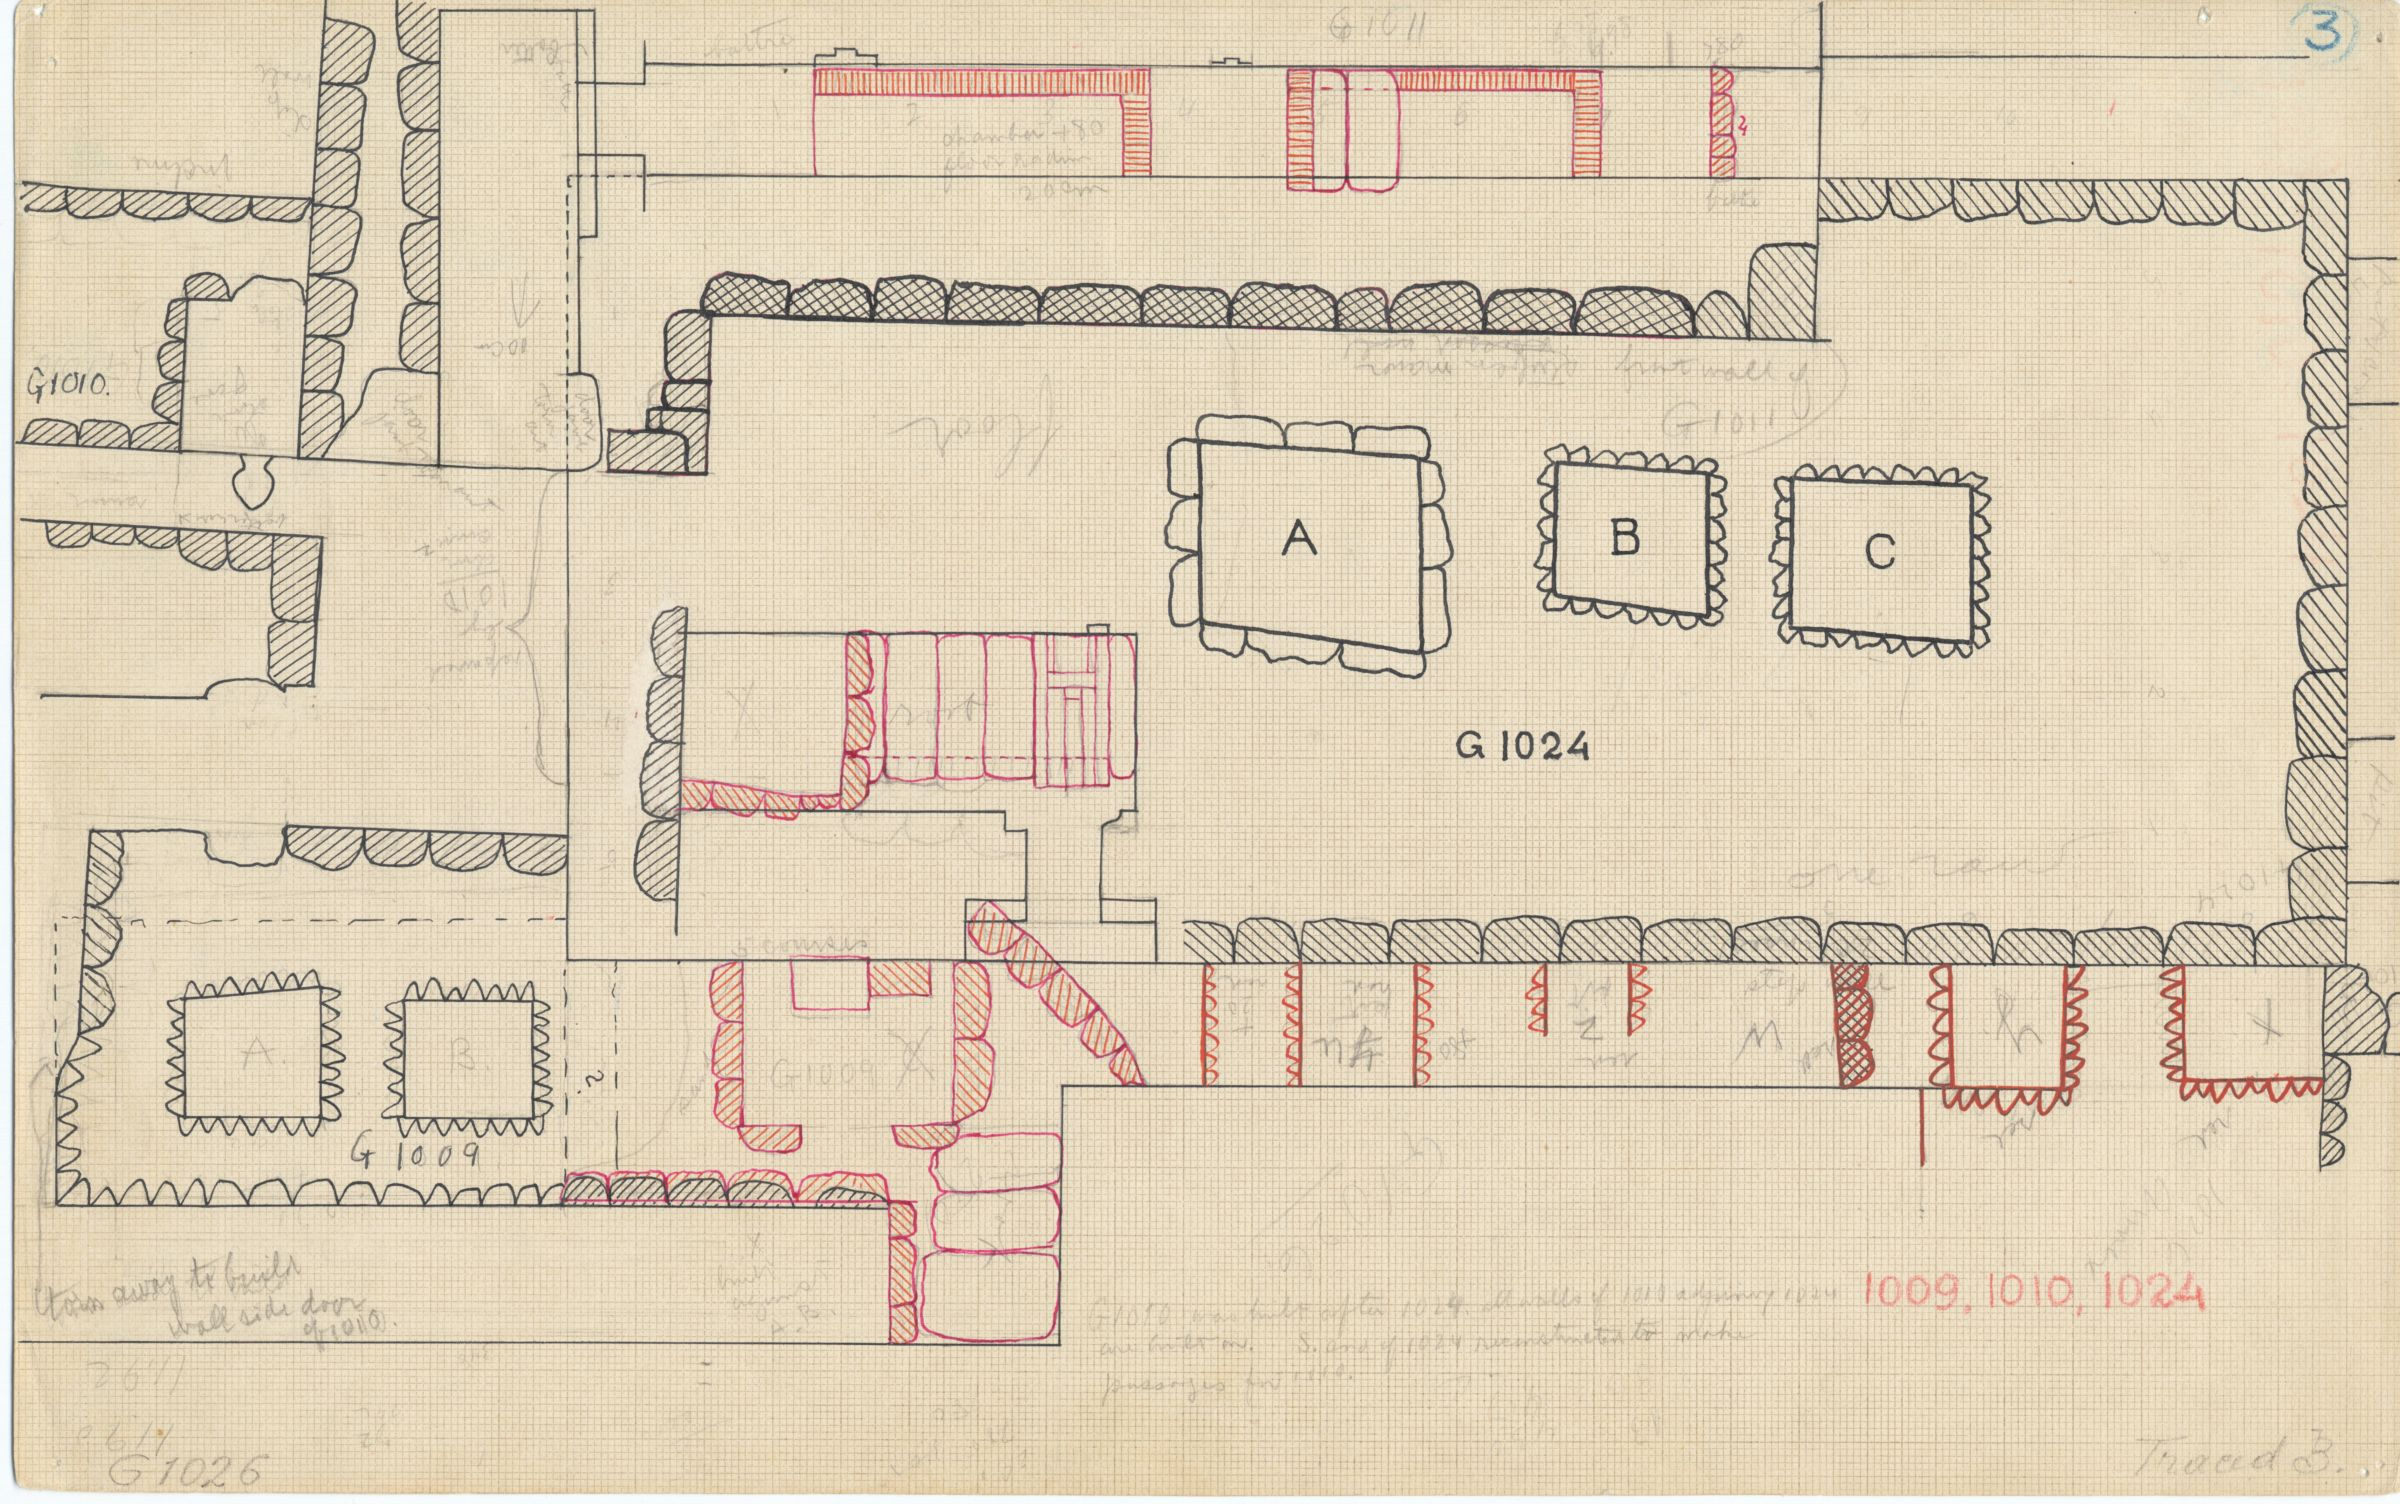 Maps and plans: Plan of G 1009 and G 1024, with position G 1010 and G 1011